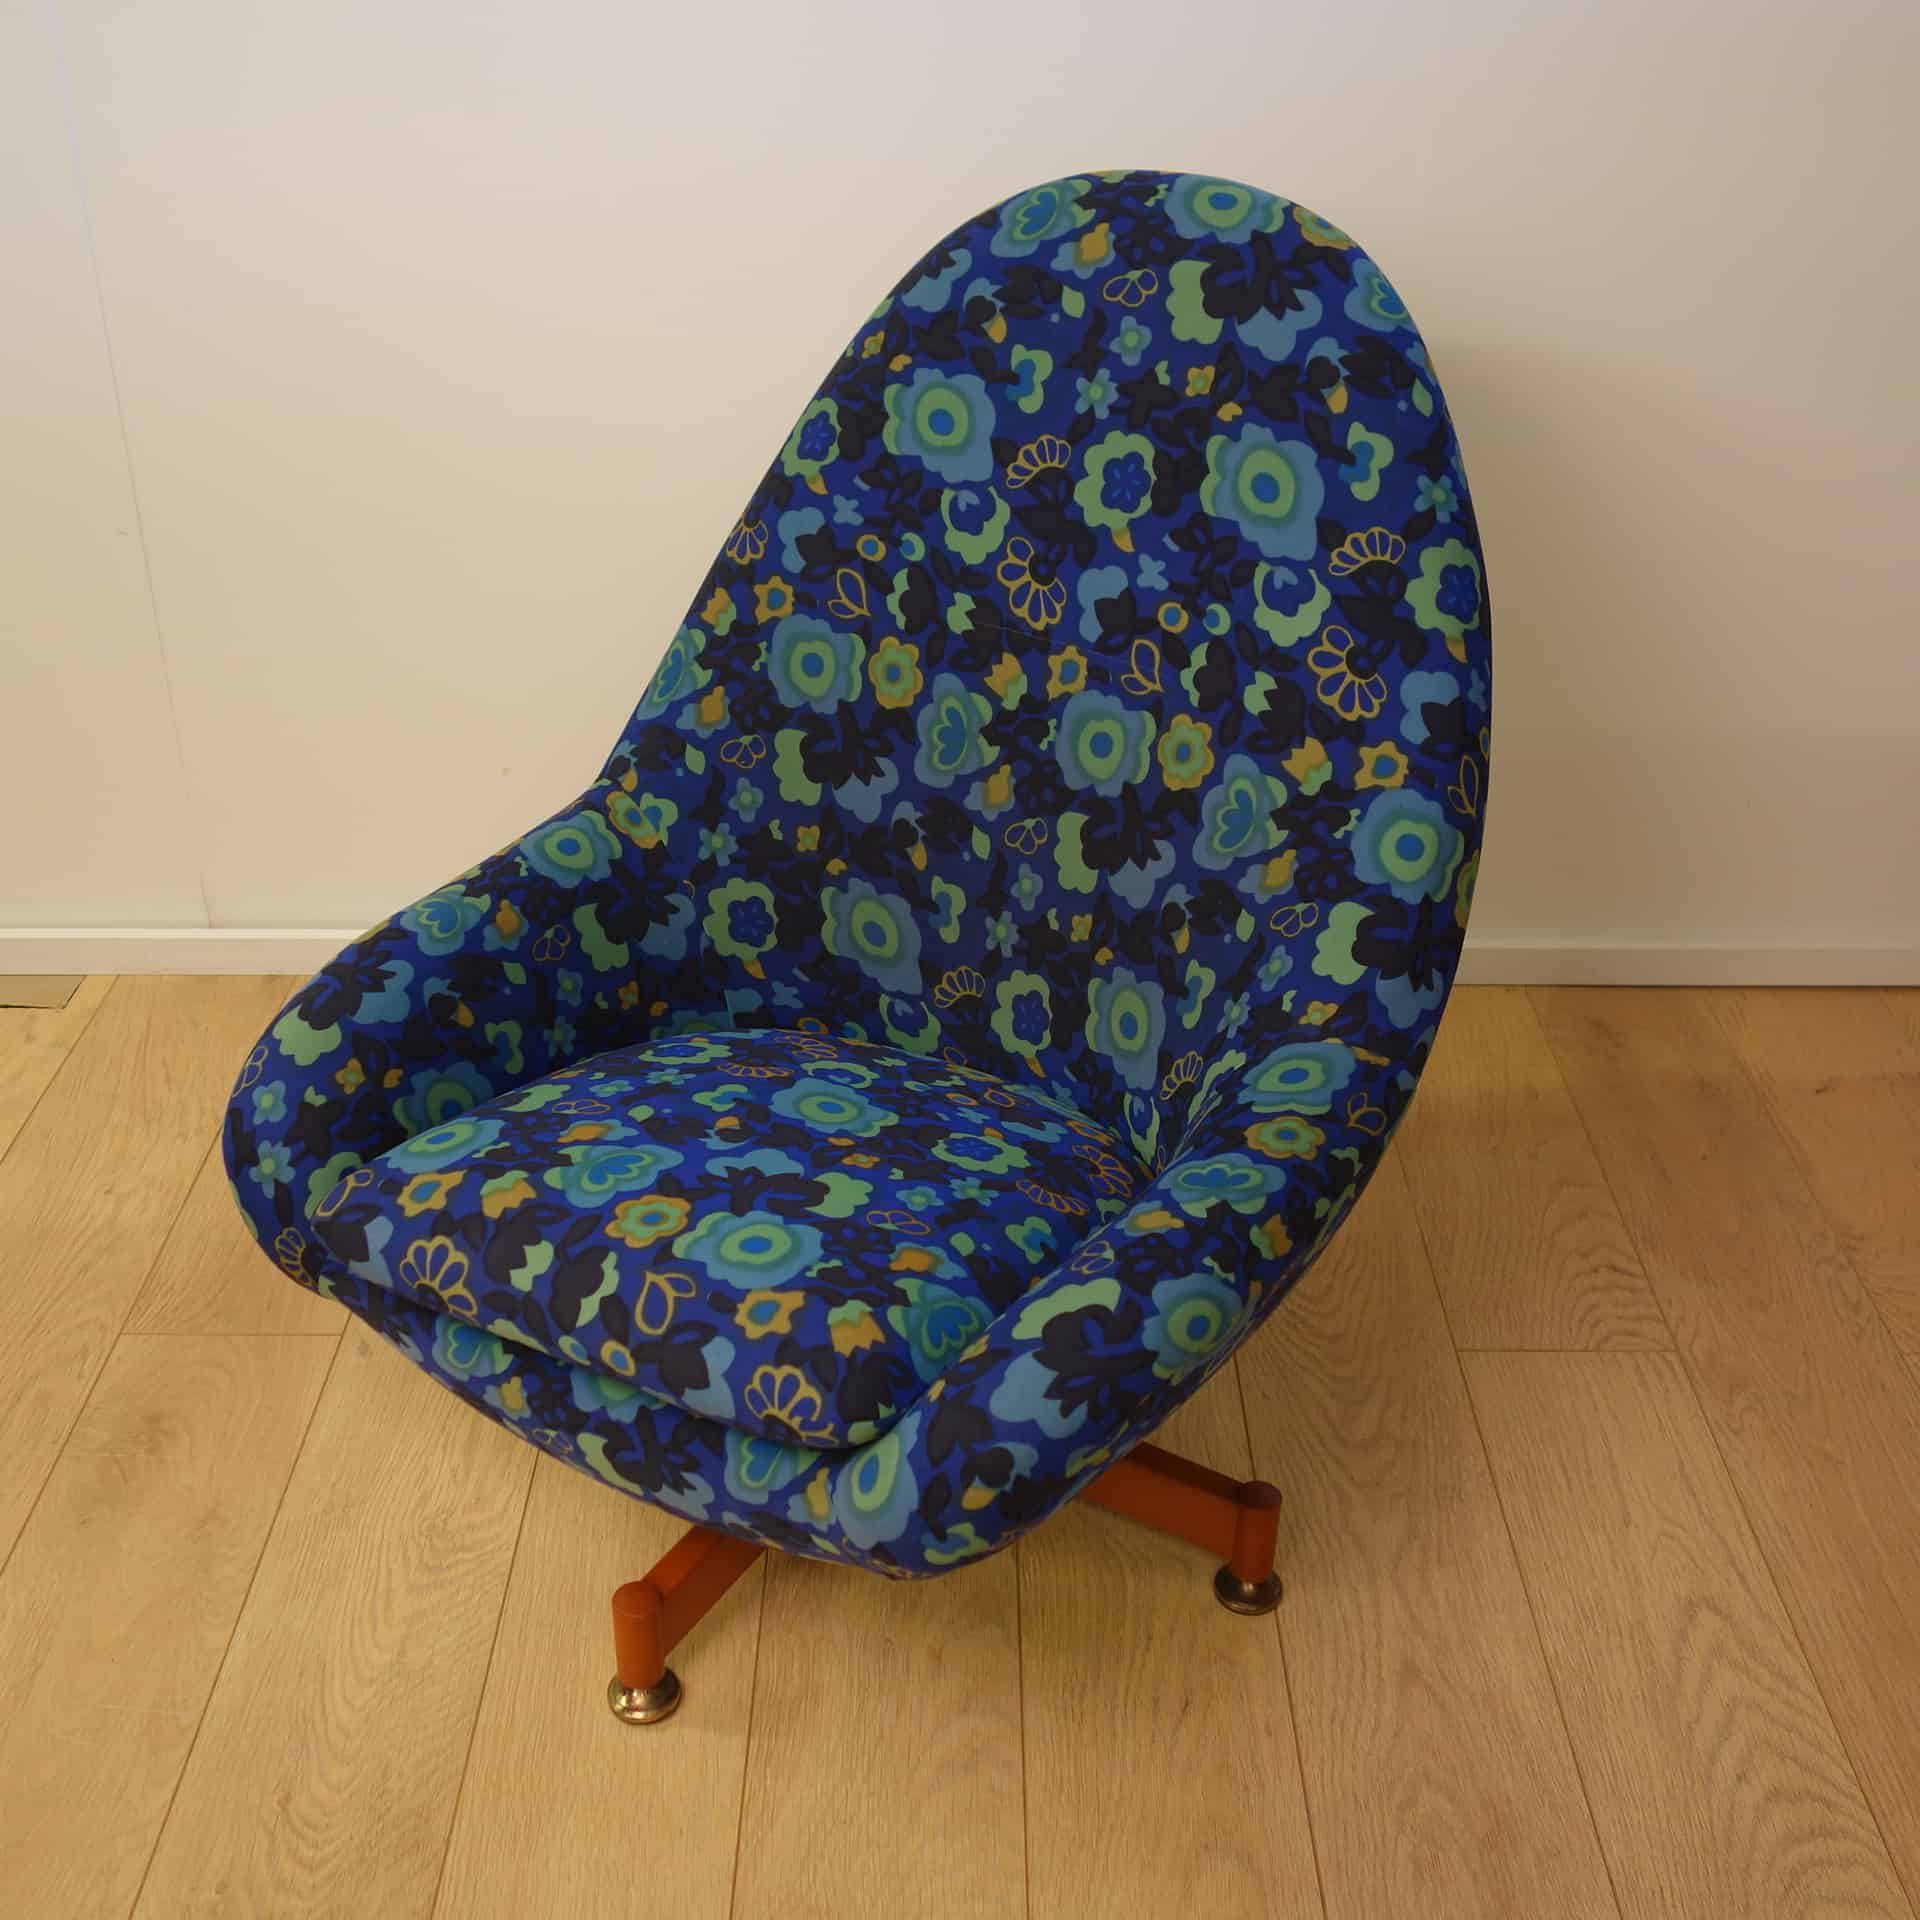 1960s Greaves And Thomas Egg Chair Mark Parrish Mid